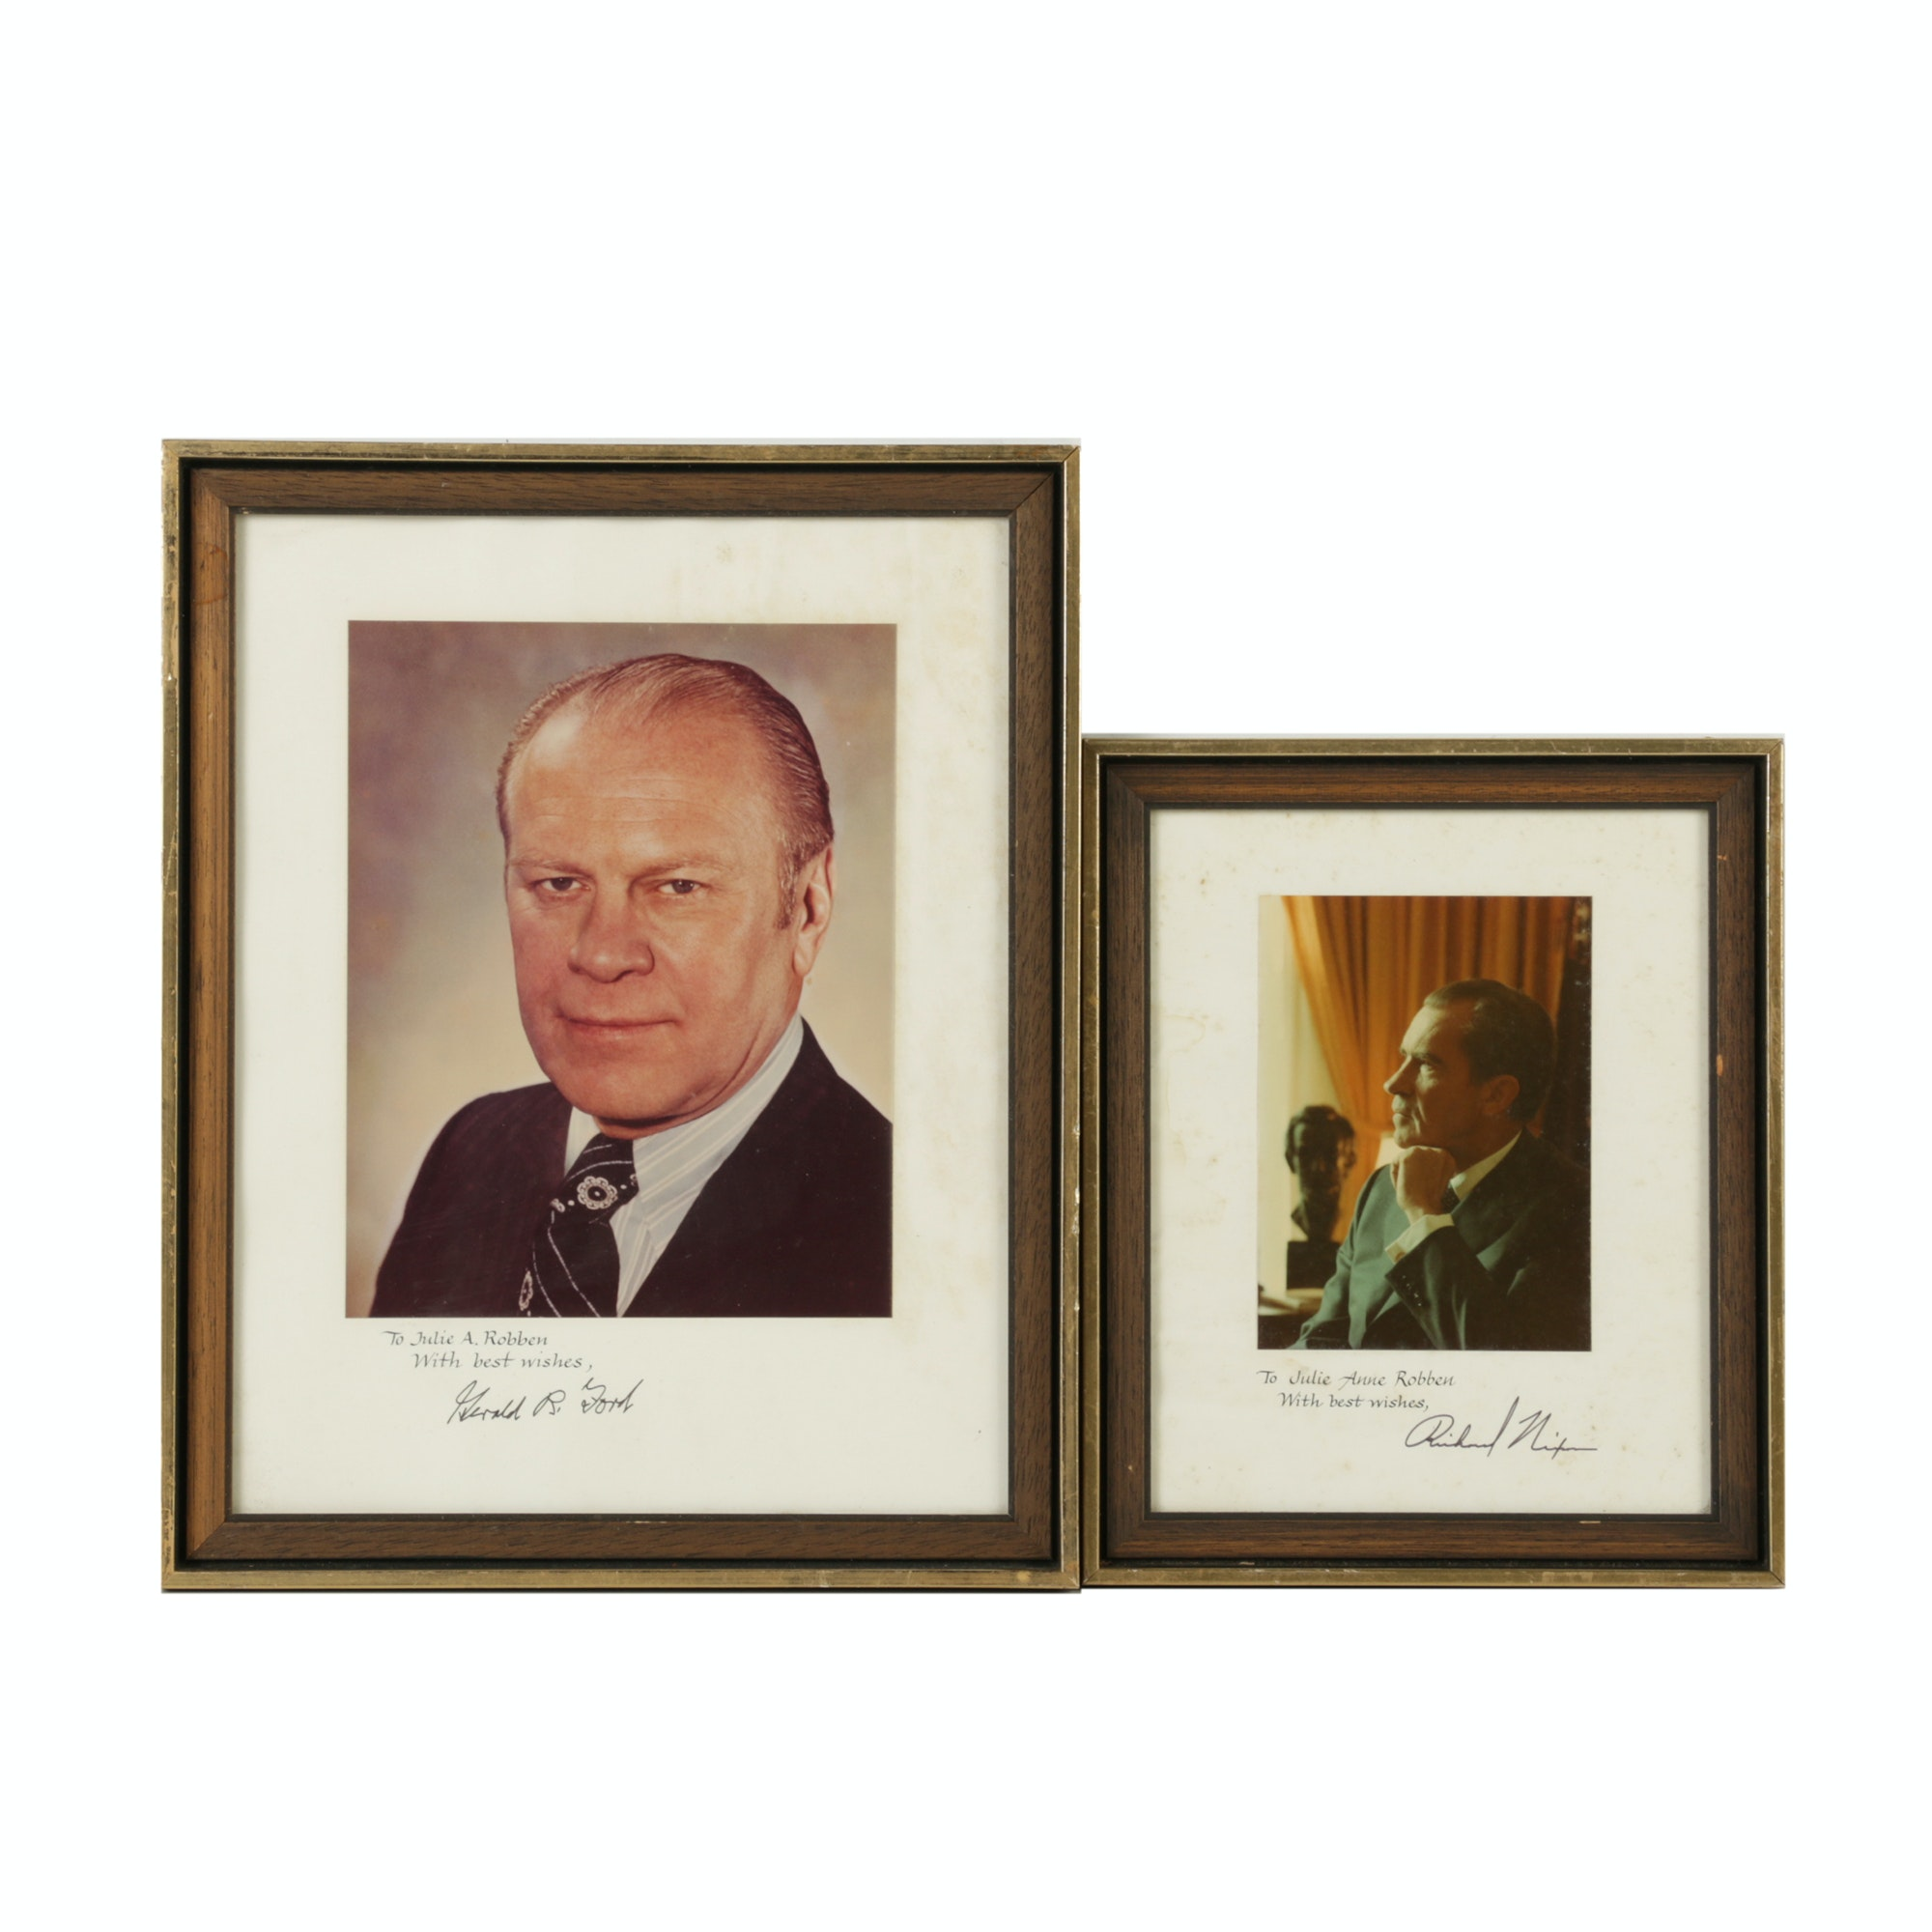 Photographs of U.S. Presidents Nixon and Ford